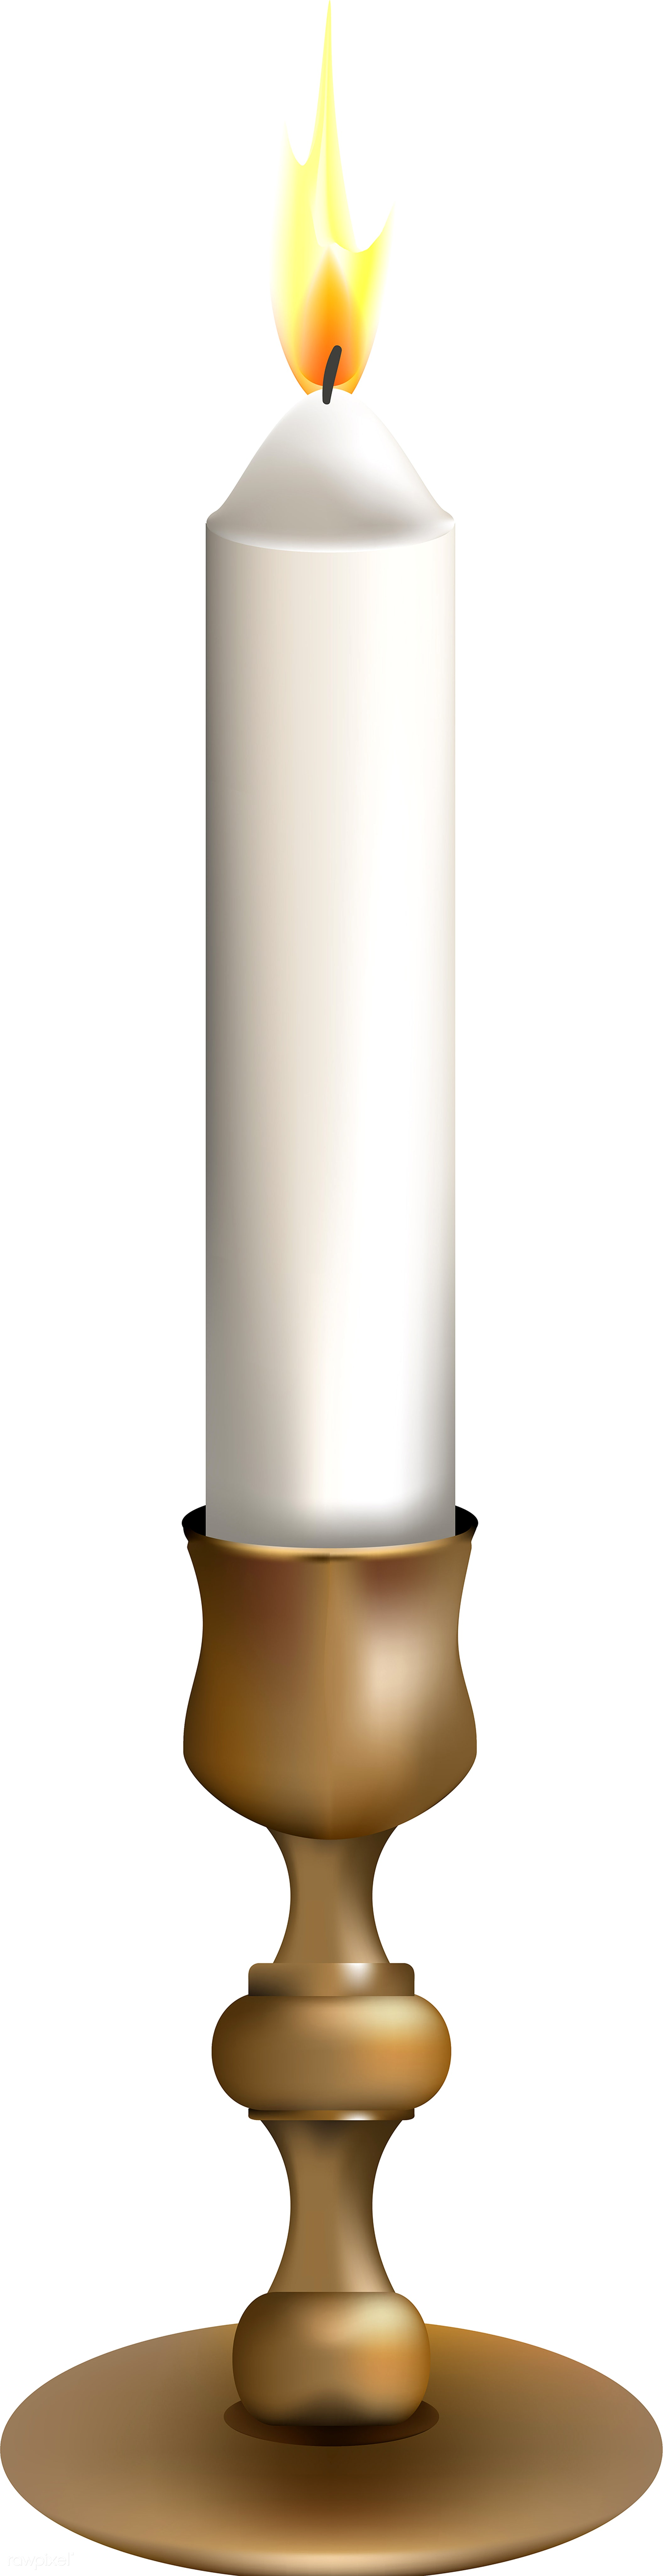 Illustration of candle isolated on white background - autumn, bright, candle, celebration, crops, decoration, elements, fall...